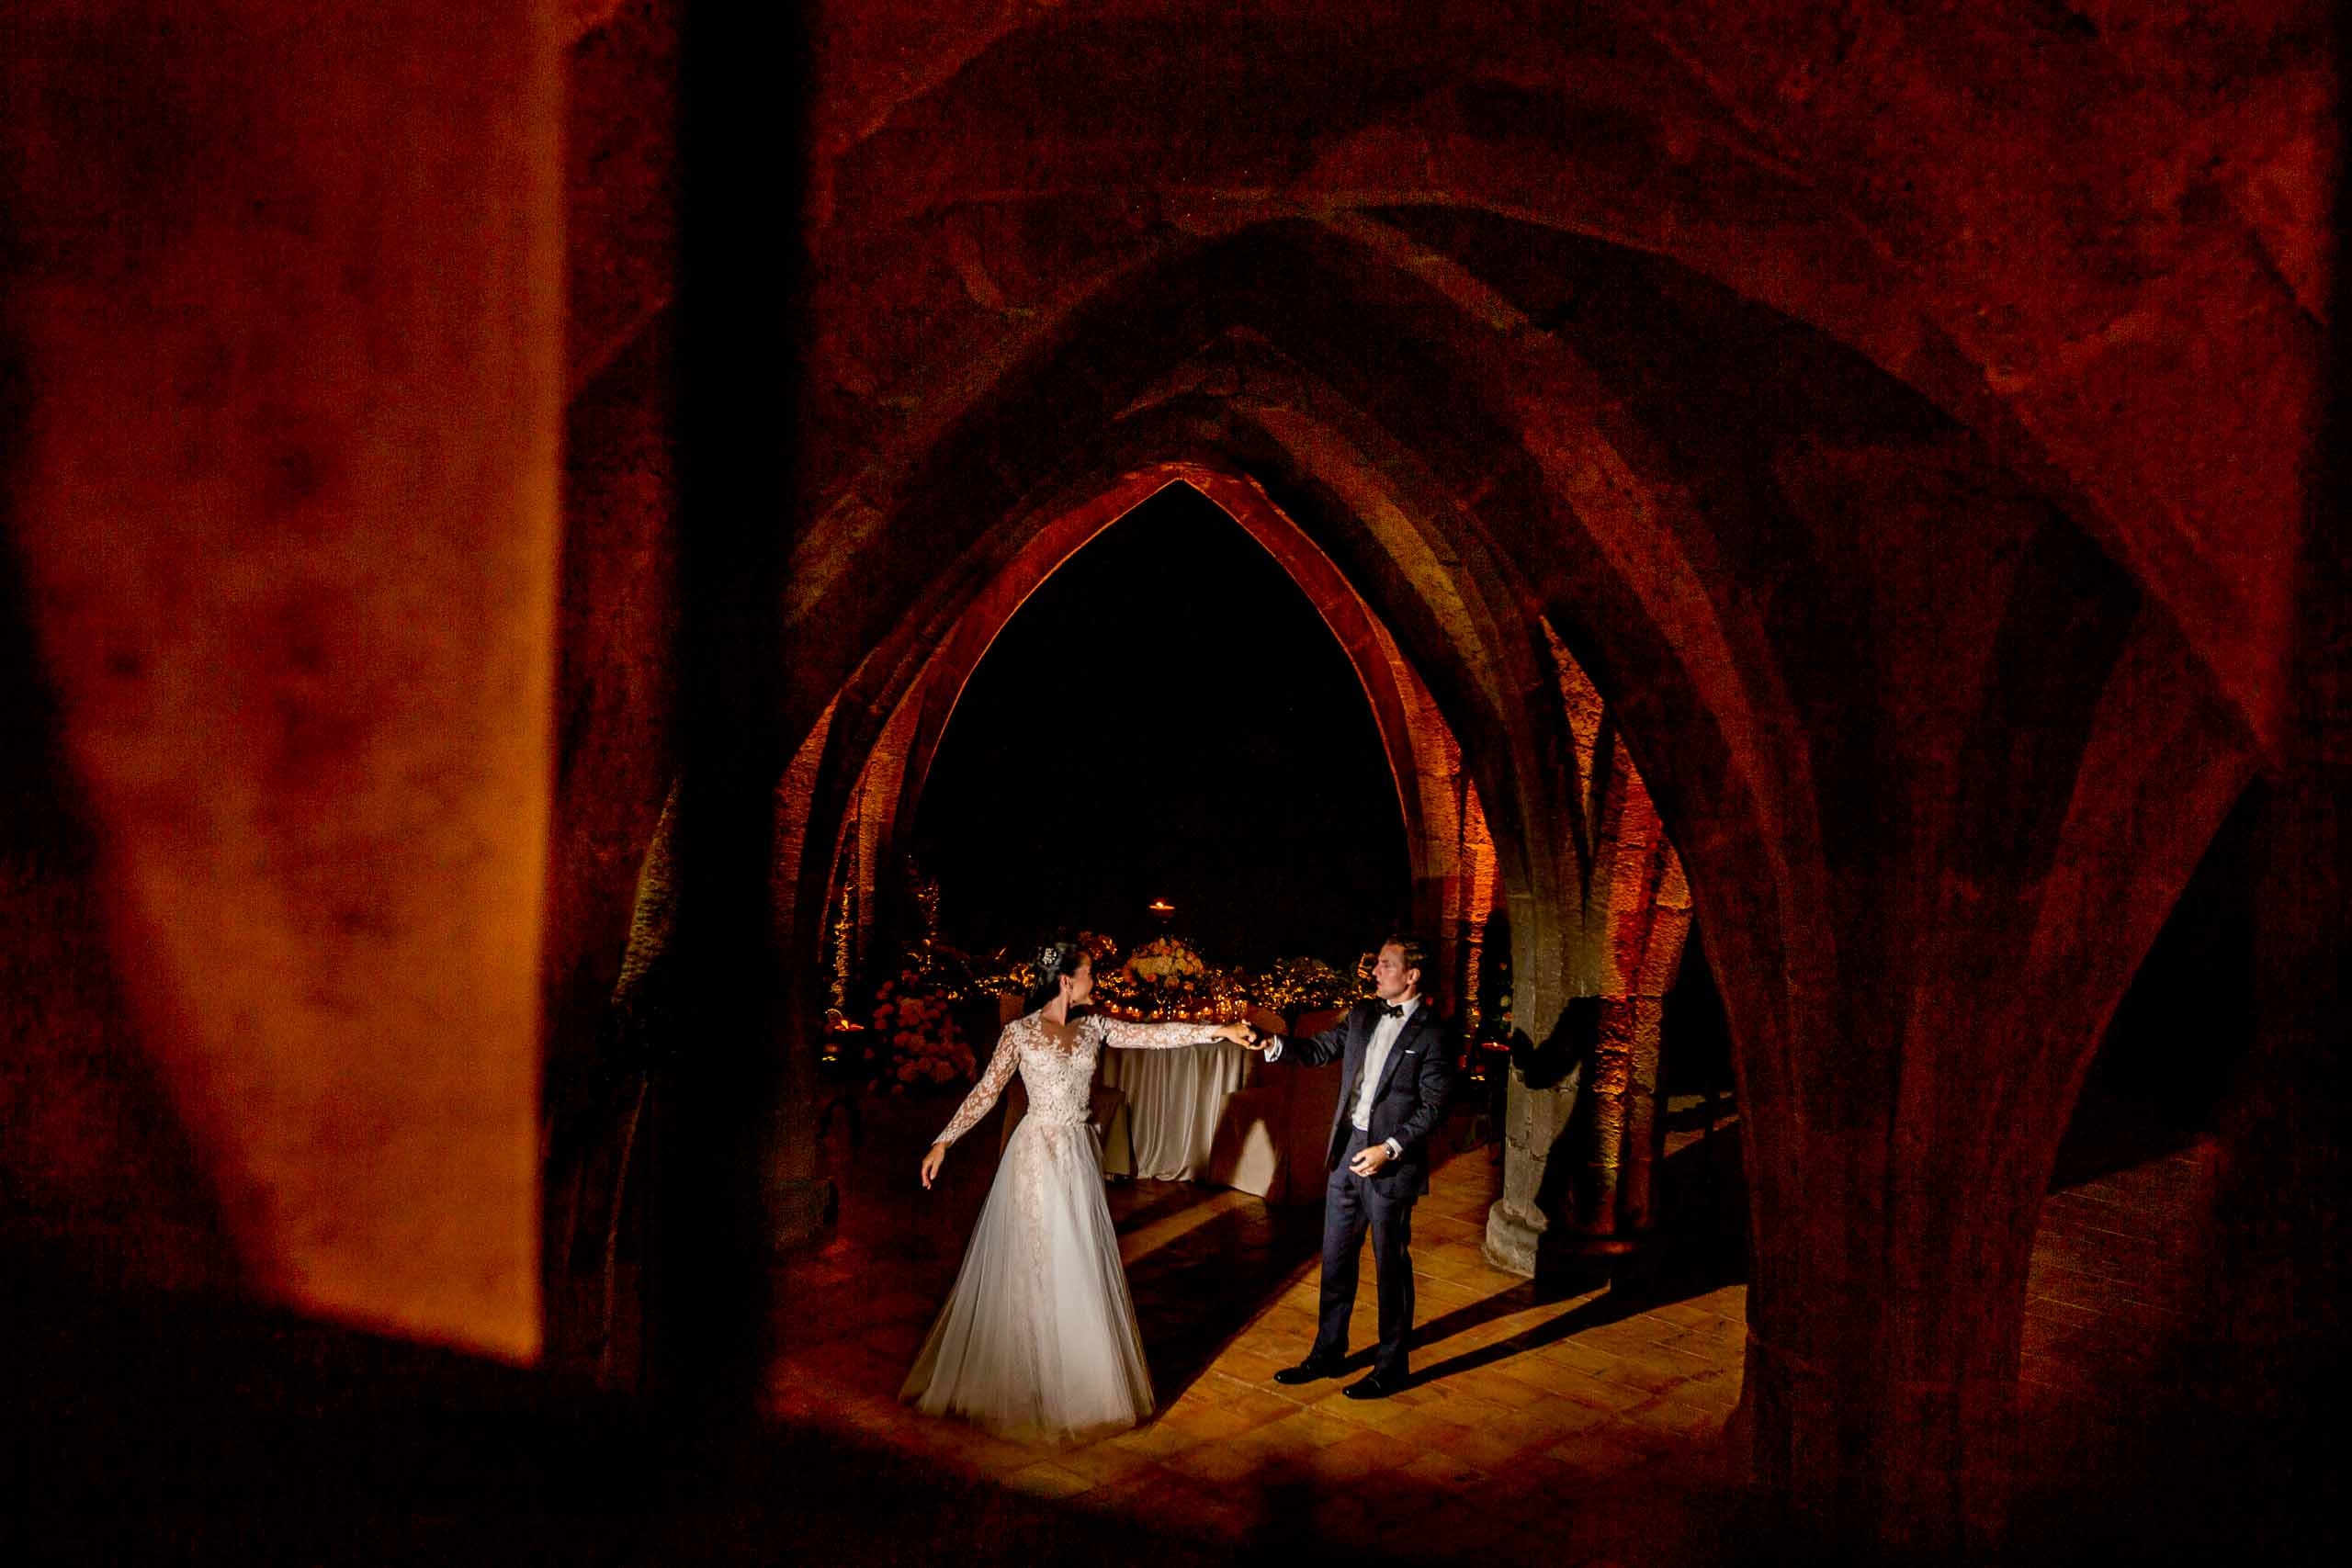 Beautiful bride and groom photo at Villa Cimbrone in the crypt for their Ravello wedding elopement along the Amafi coast in Italy.